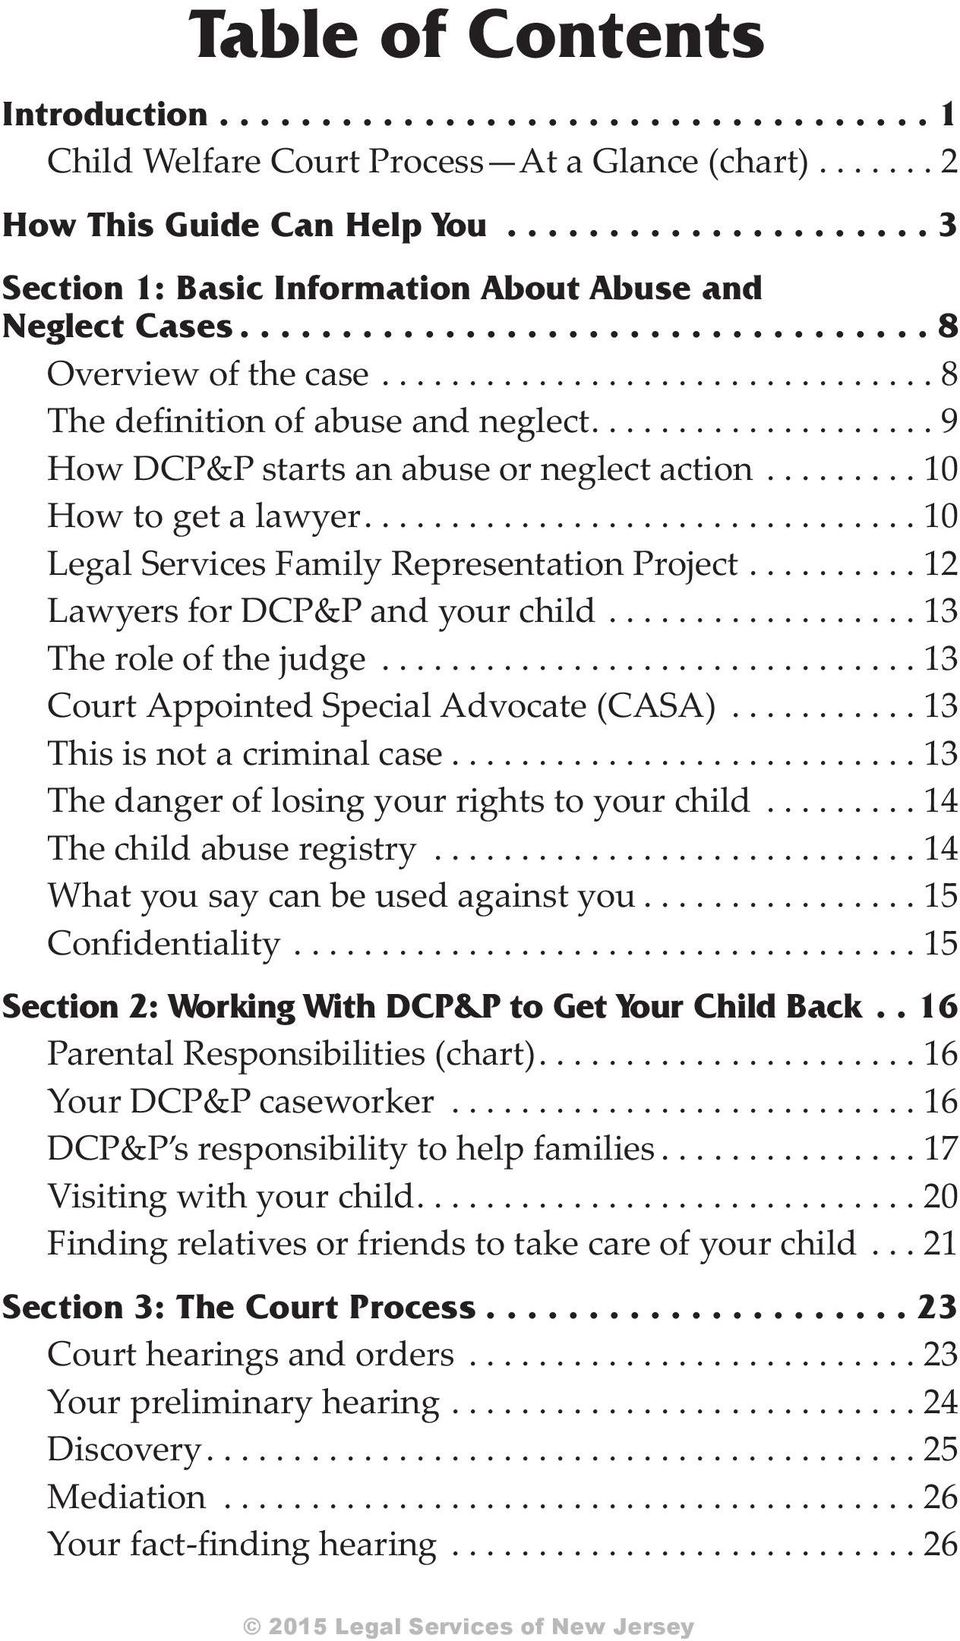 ..12 Law yers for DCP&P and your child...13 The role of the judge...13 Court Appointed Special Advocate (CASA)...13 This is not a crim i nal case...13 The dan ger of los ing your rights to your child.